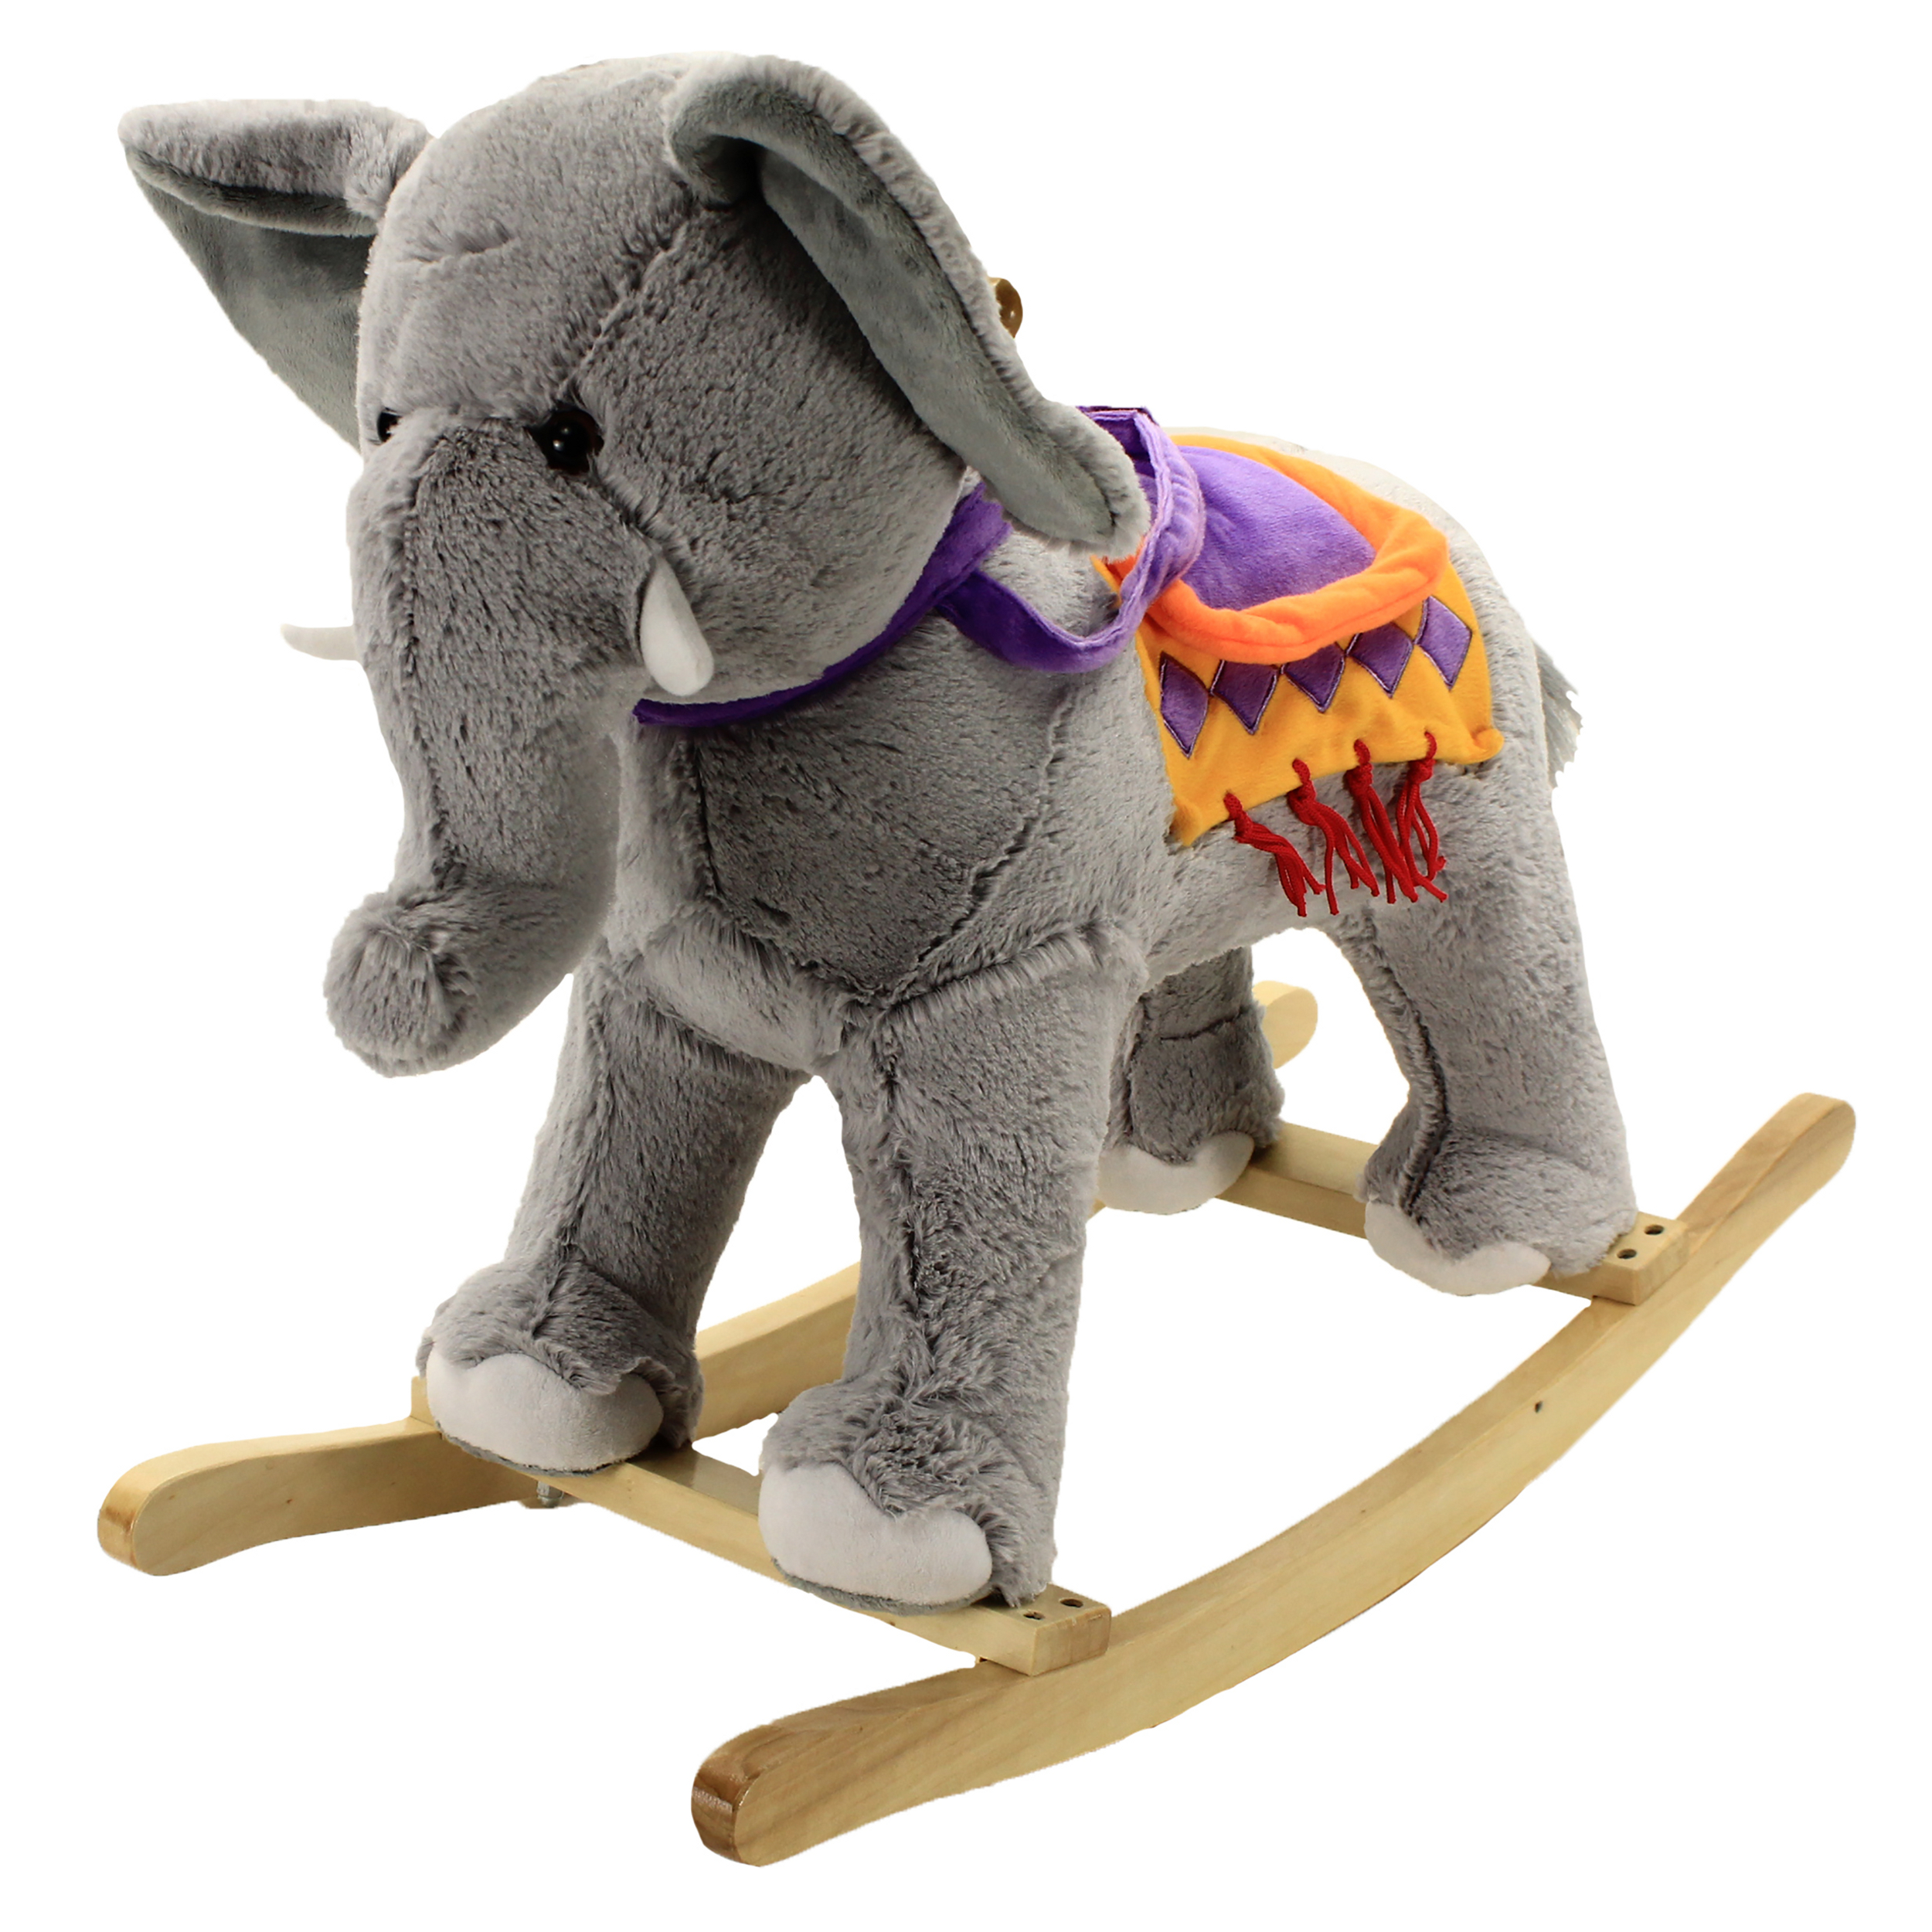 plush animal rocking chairs stackable resin lowes adventure rocker circus elephant toys